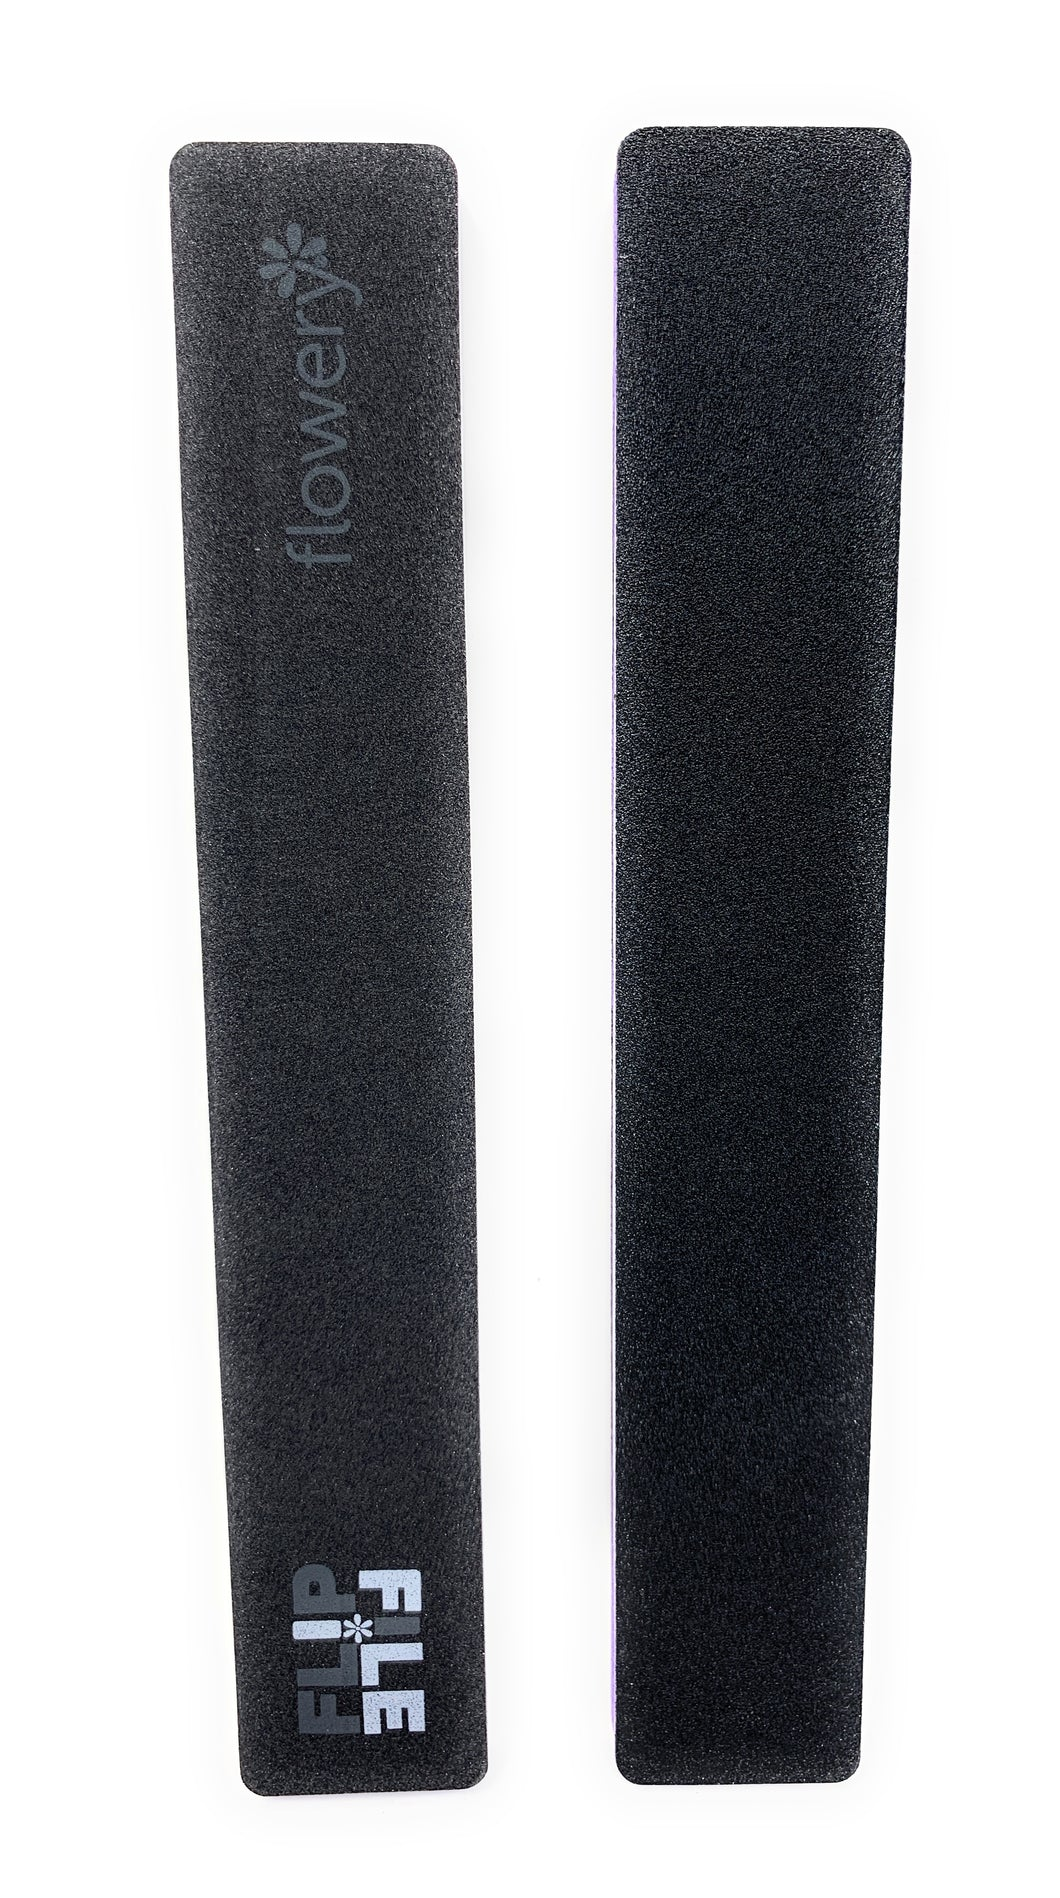 Flowery 2 in 1 Nail File and Nail Buffer 150-180/300 Grit Natural Nail  Black Purple 2 Pc.